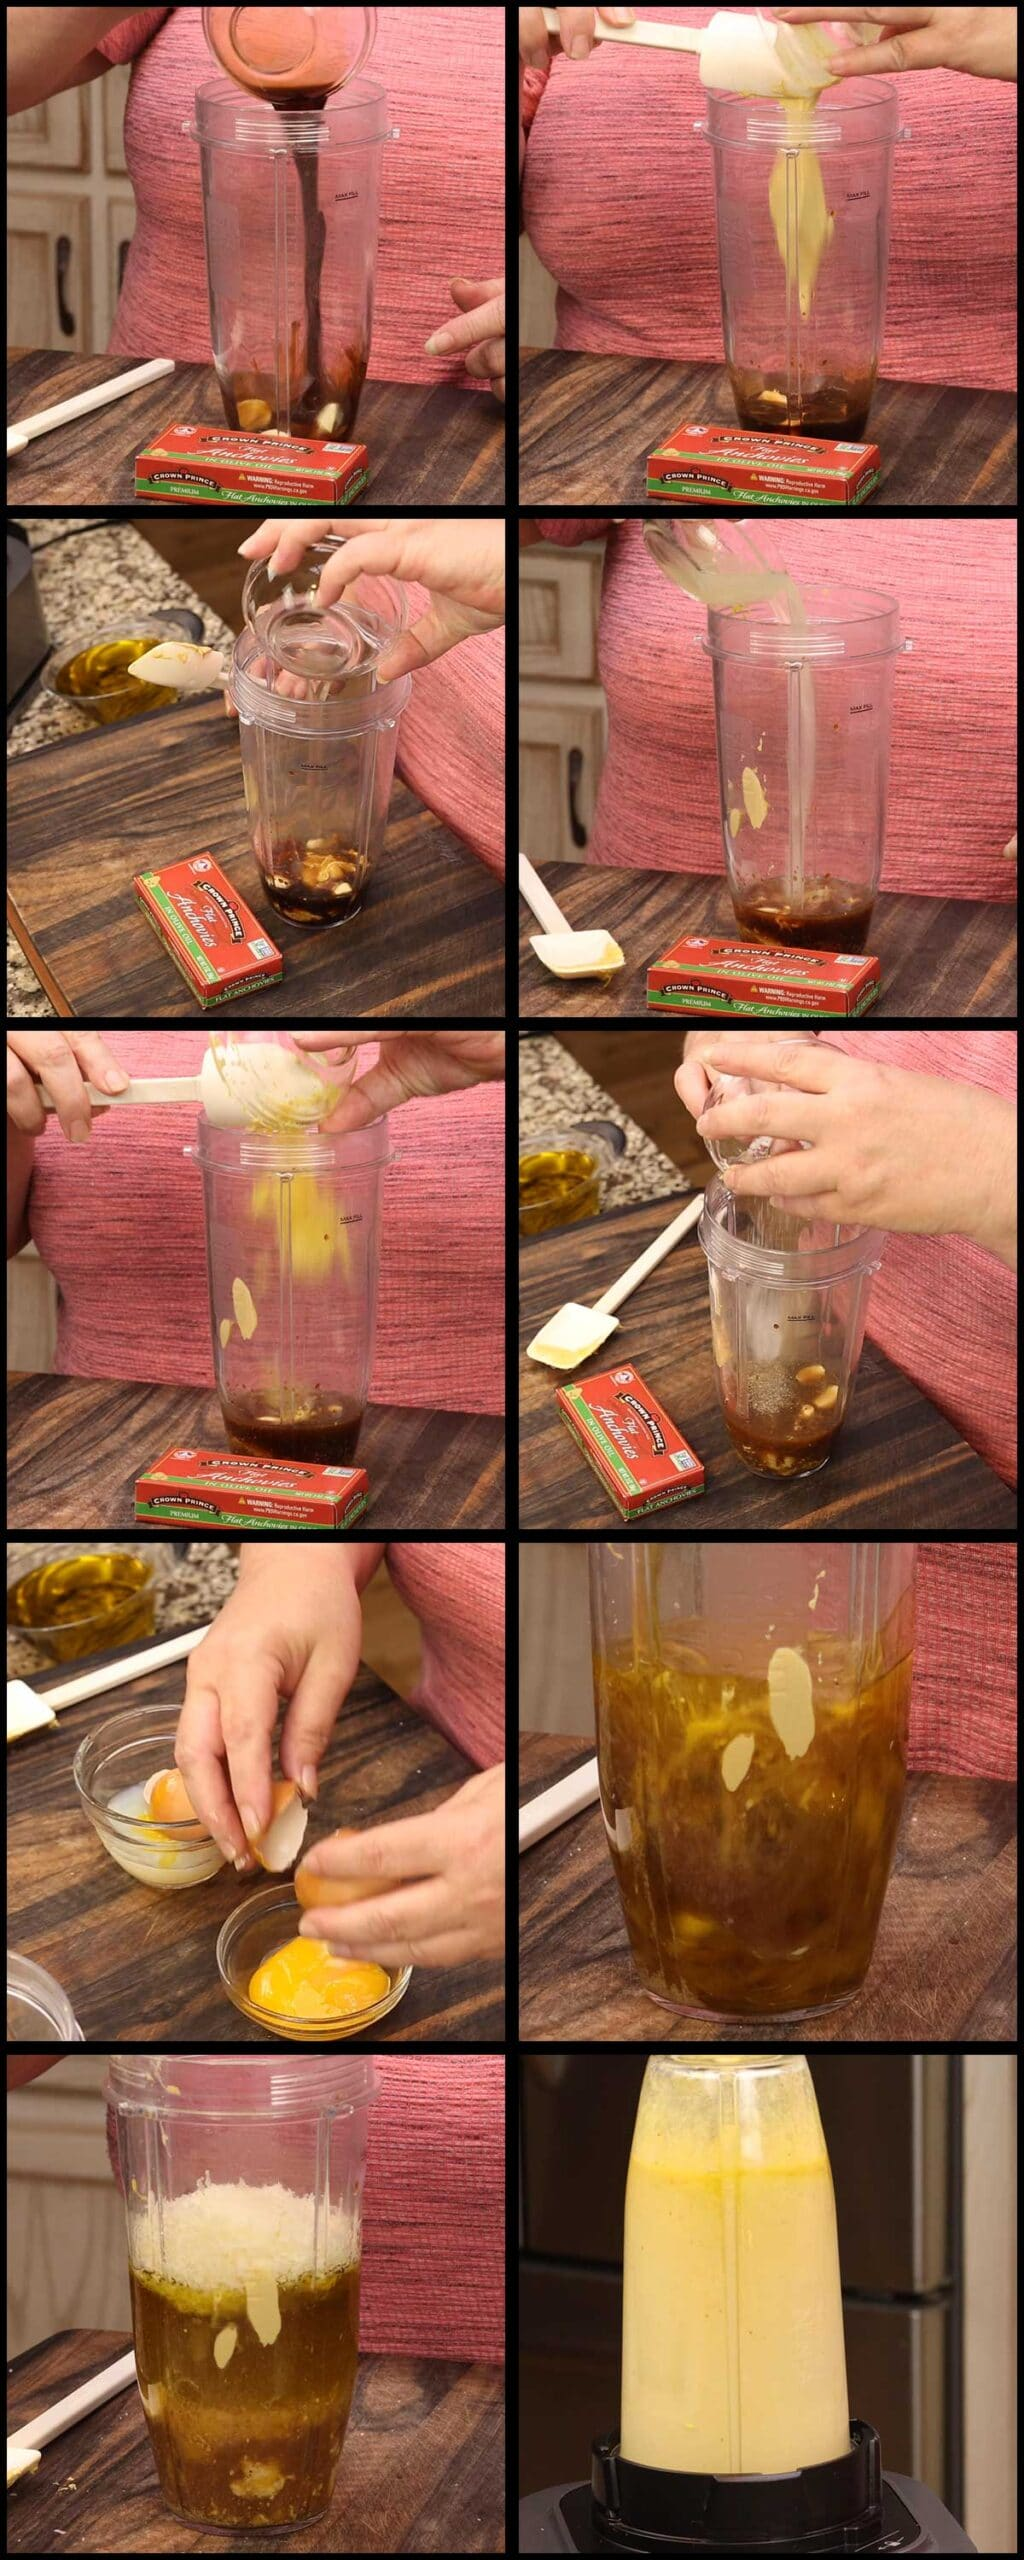 collage of ingredients going in the blender and being blended